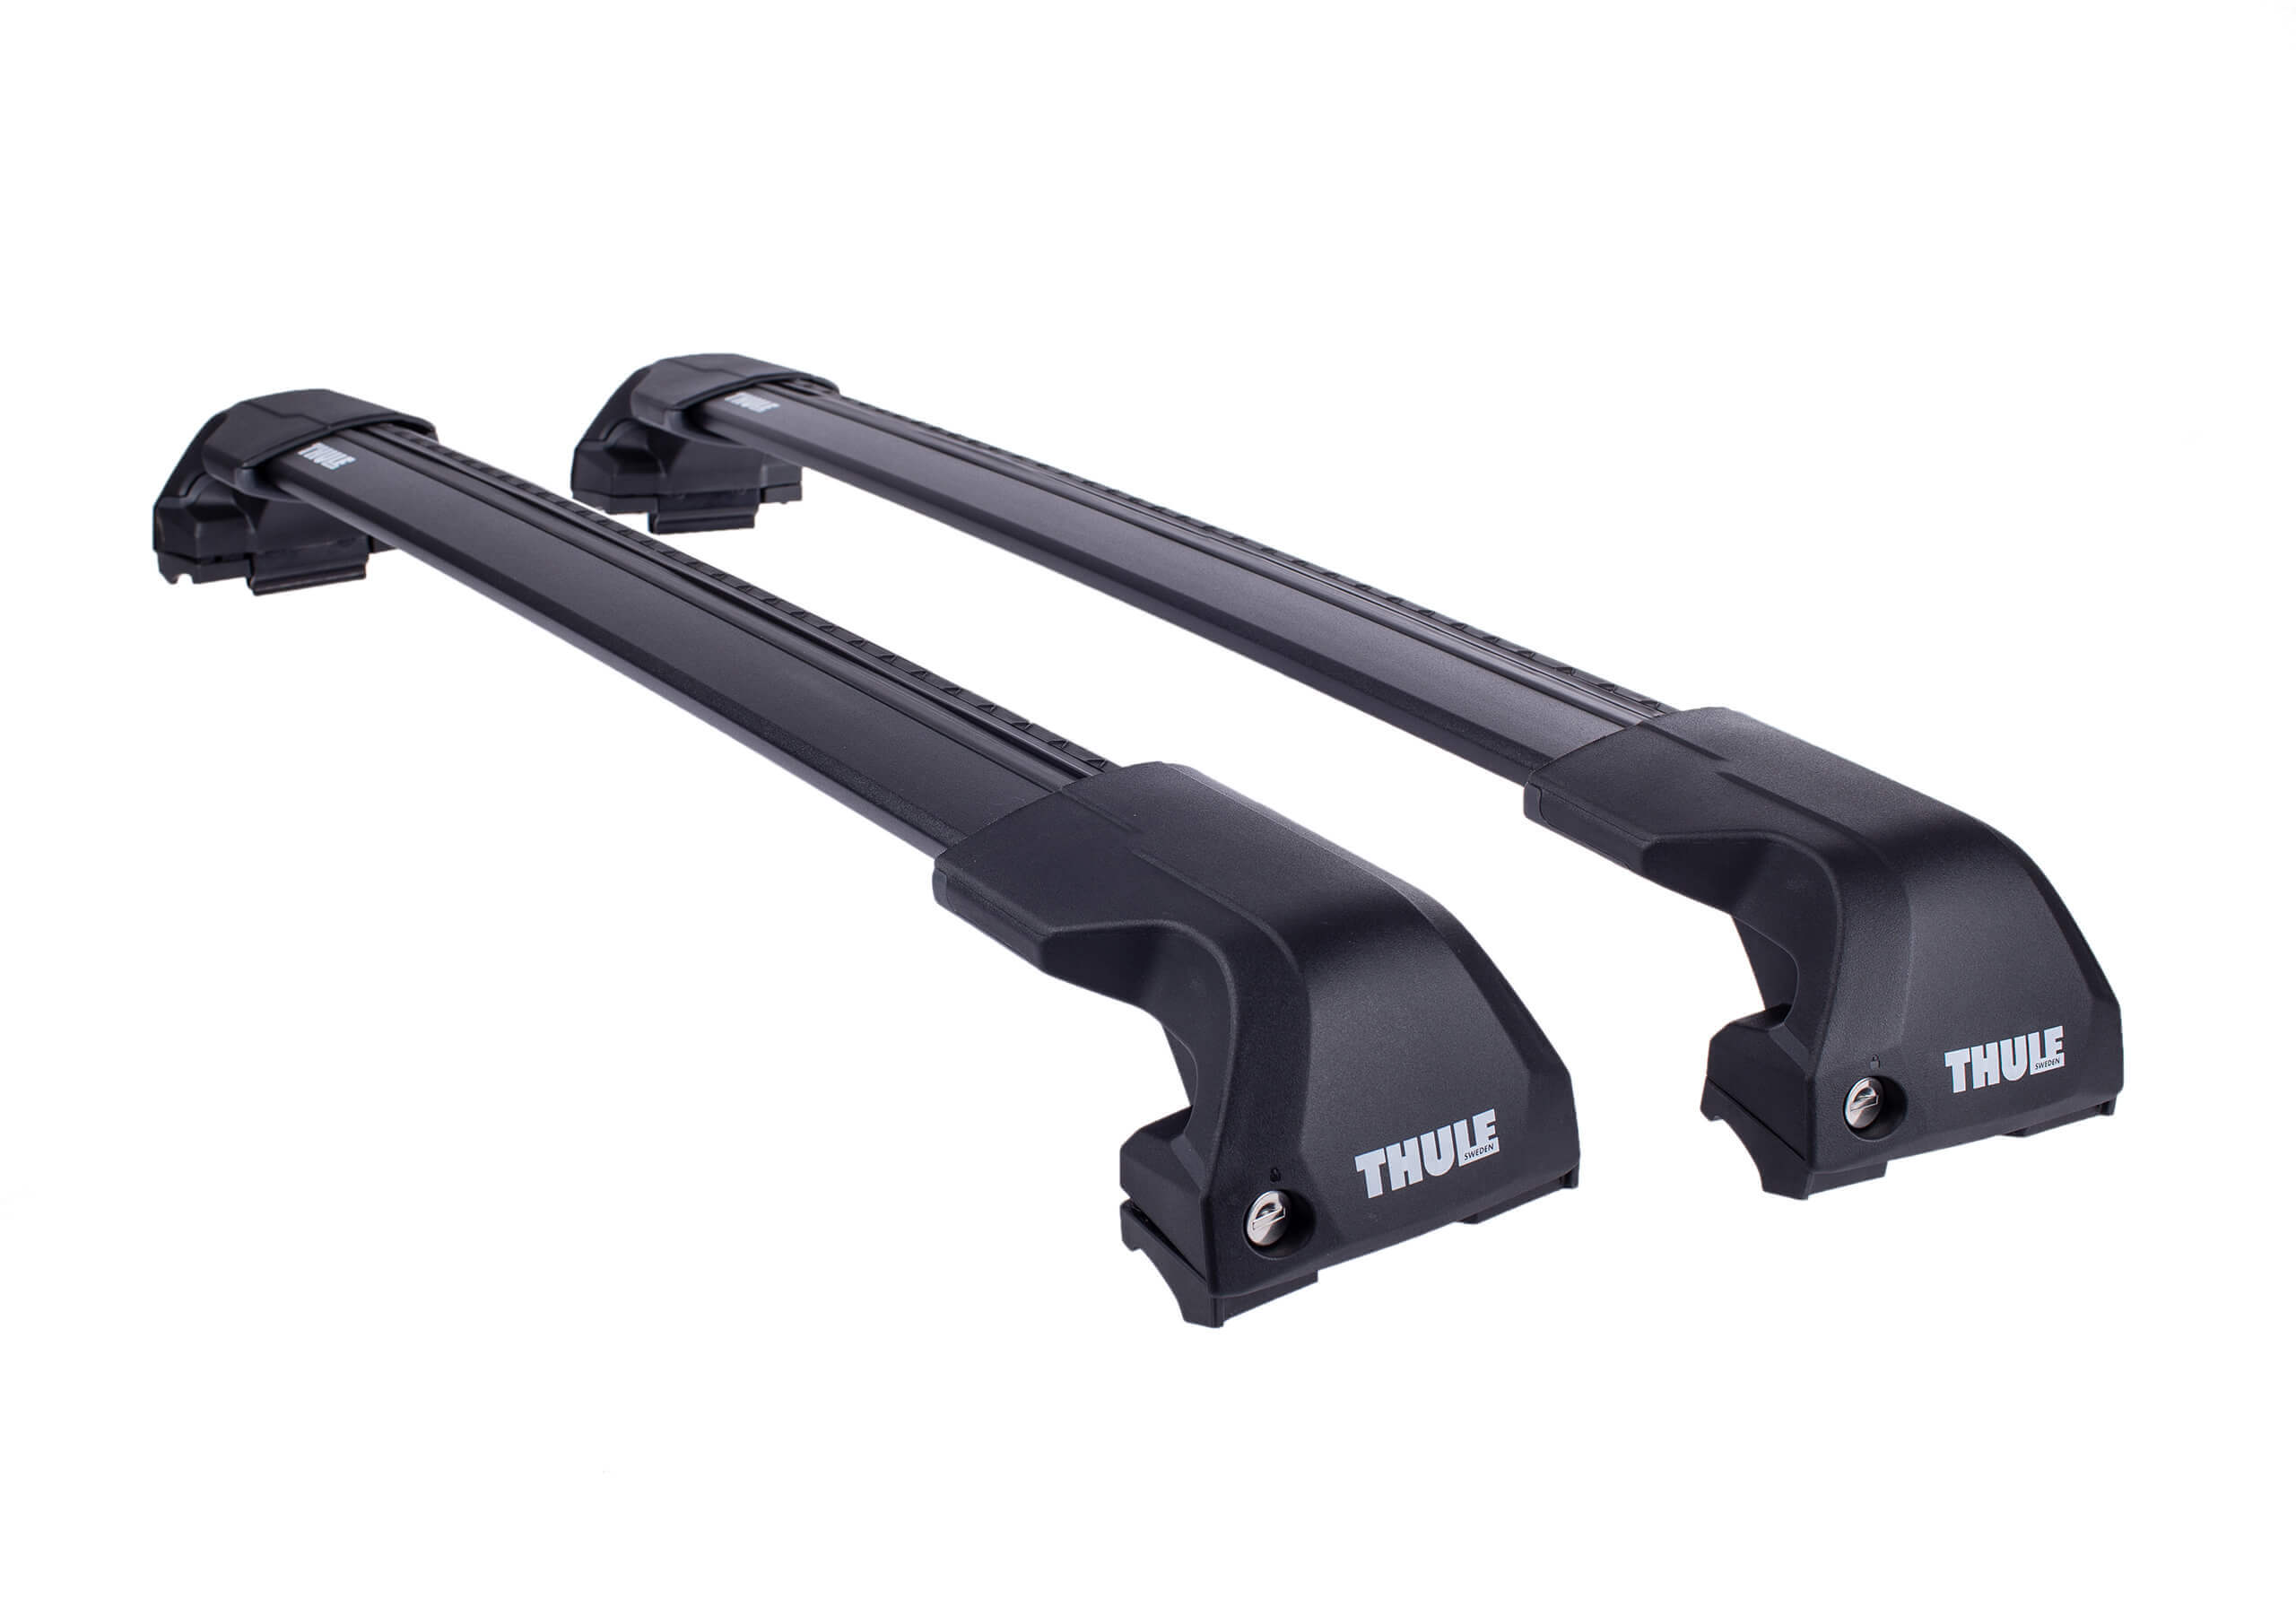 Audi Q3 (2019 onwards):Thule Edge black WingBars package - 7206, 7214B x 2, 6091